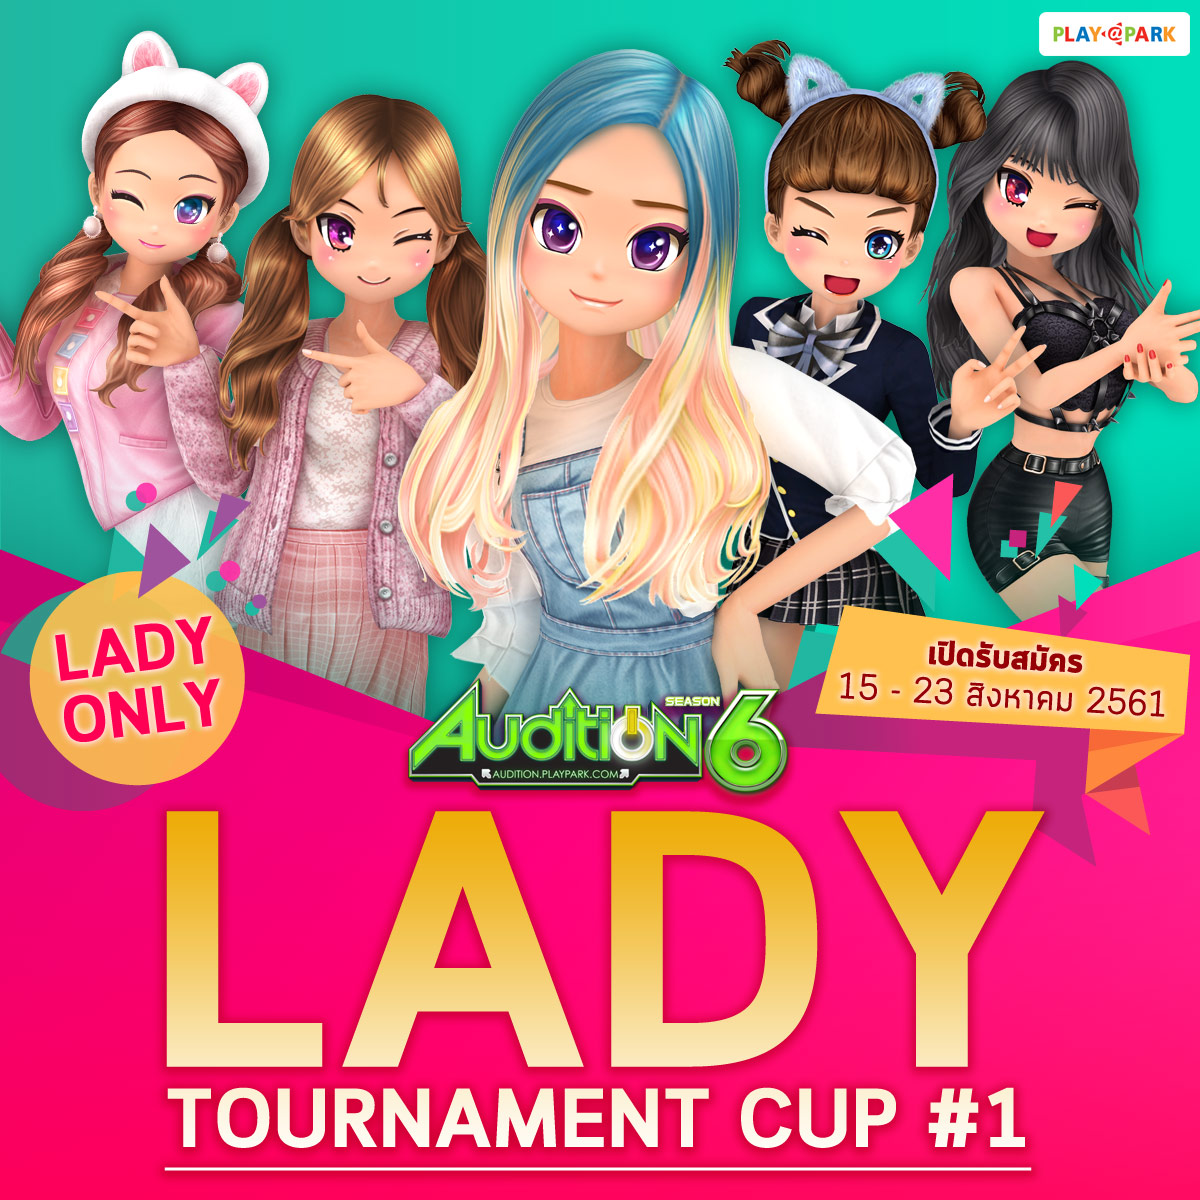 [AUDITION] LADY TOURNAMENT CUP #1